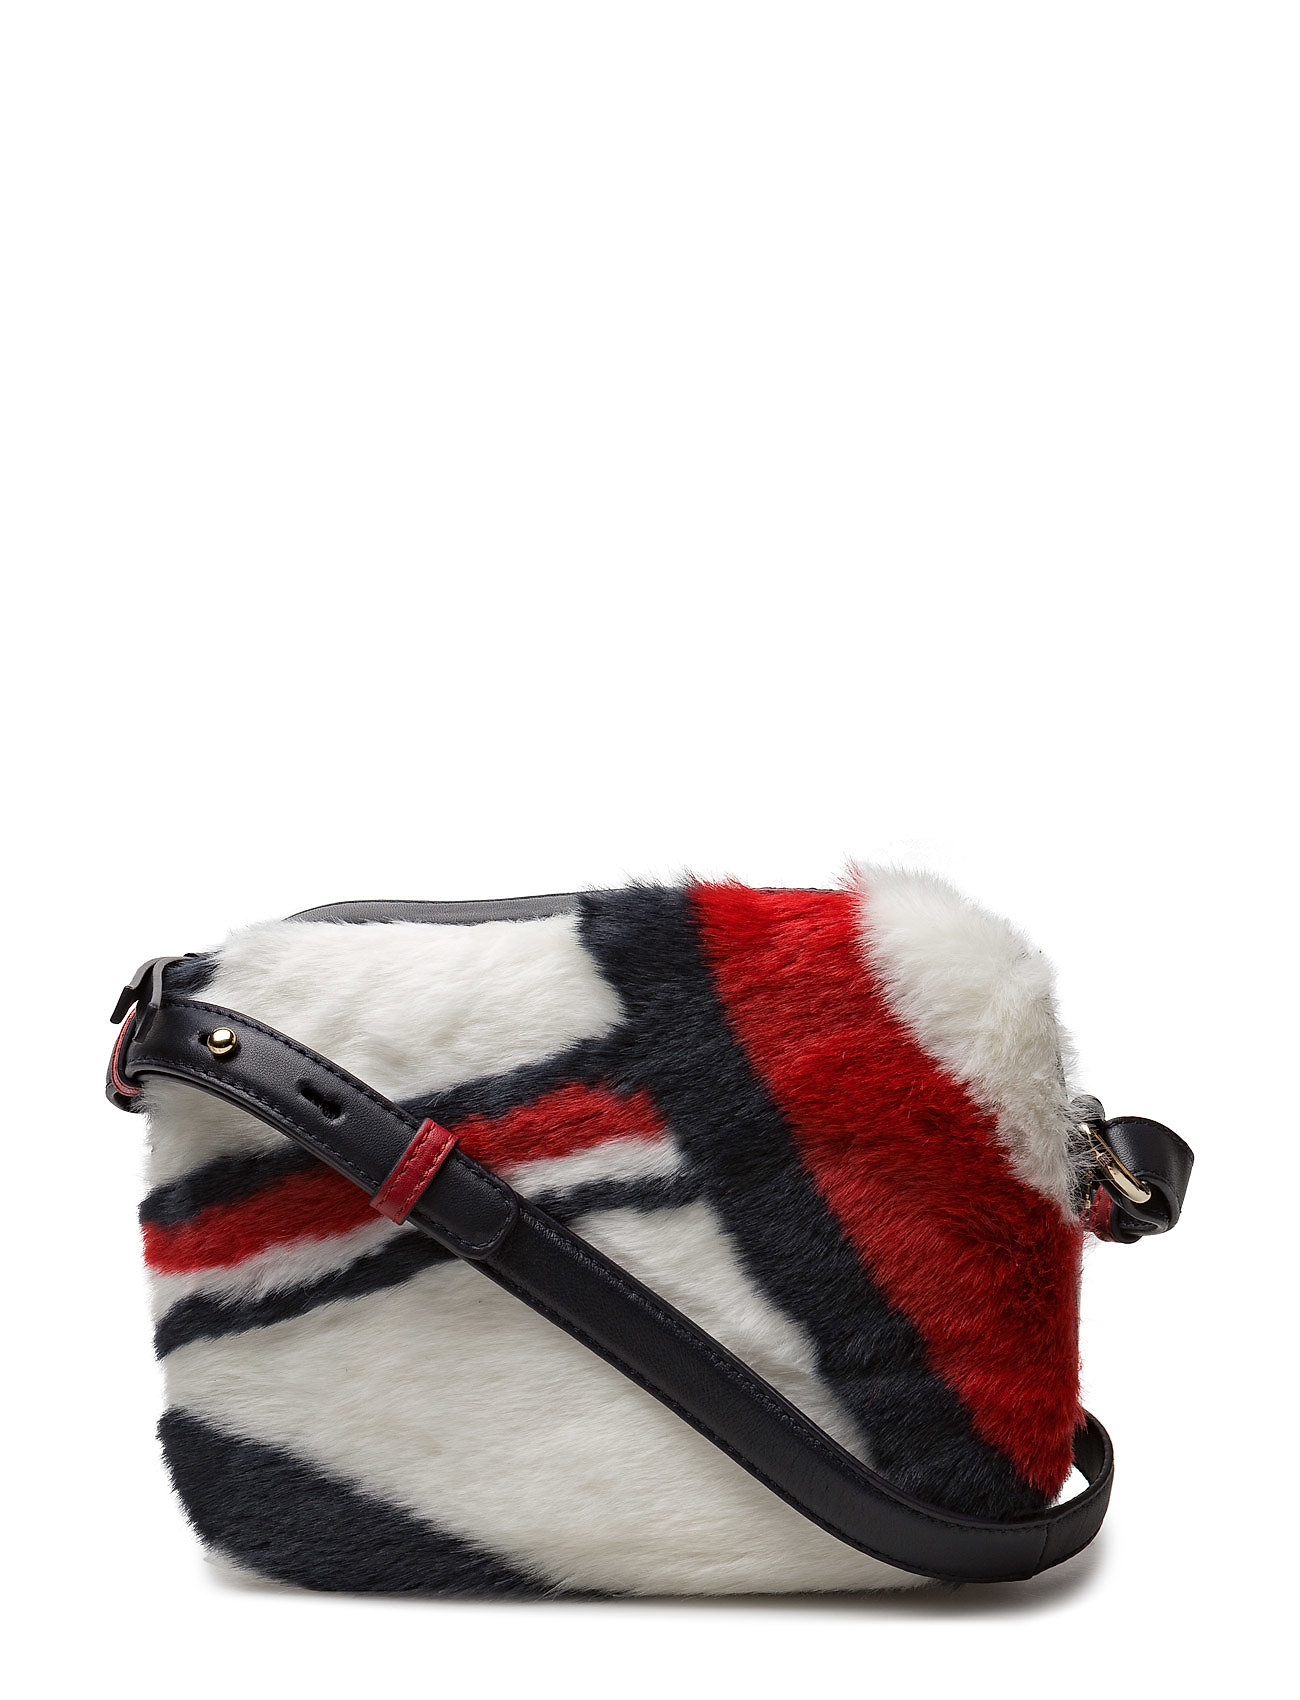 Tommy Hilfiger ICONIC CAMERA BAG LEATHER FUR